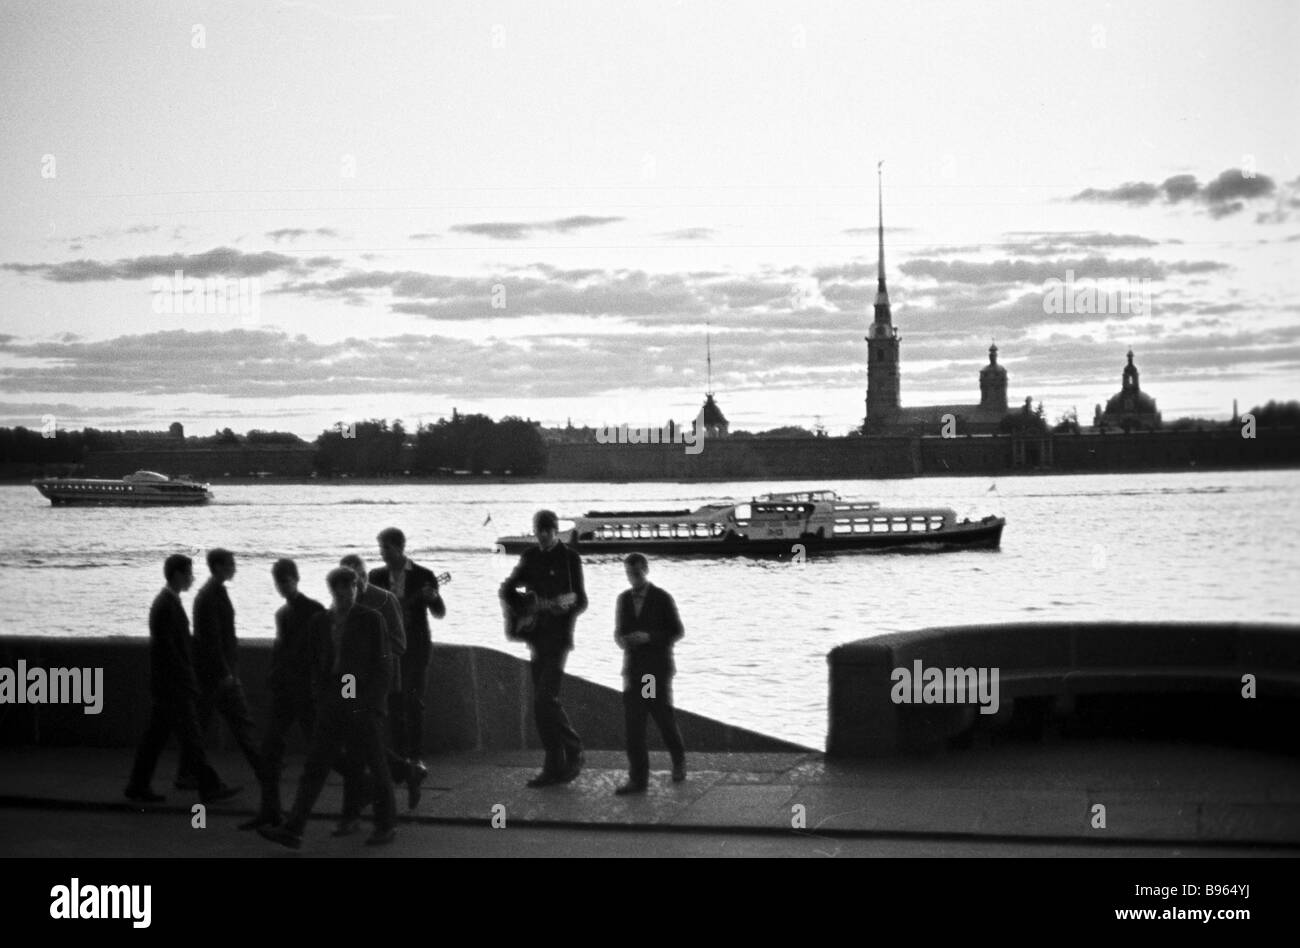 Young people in the Neva embankment on white nights - Stock Image